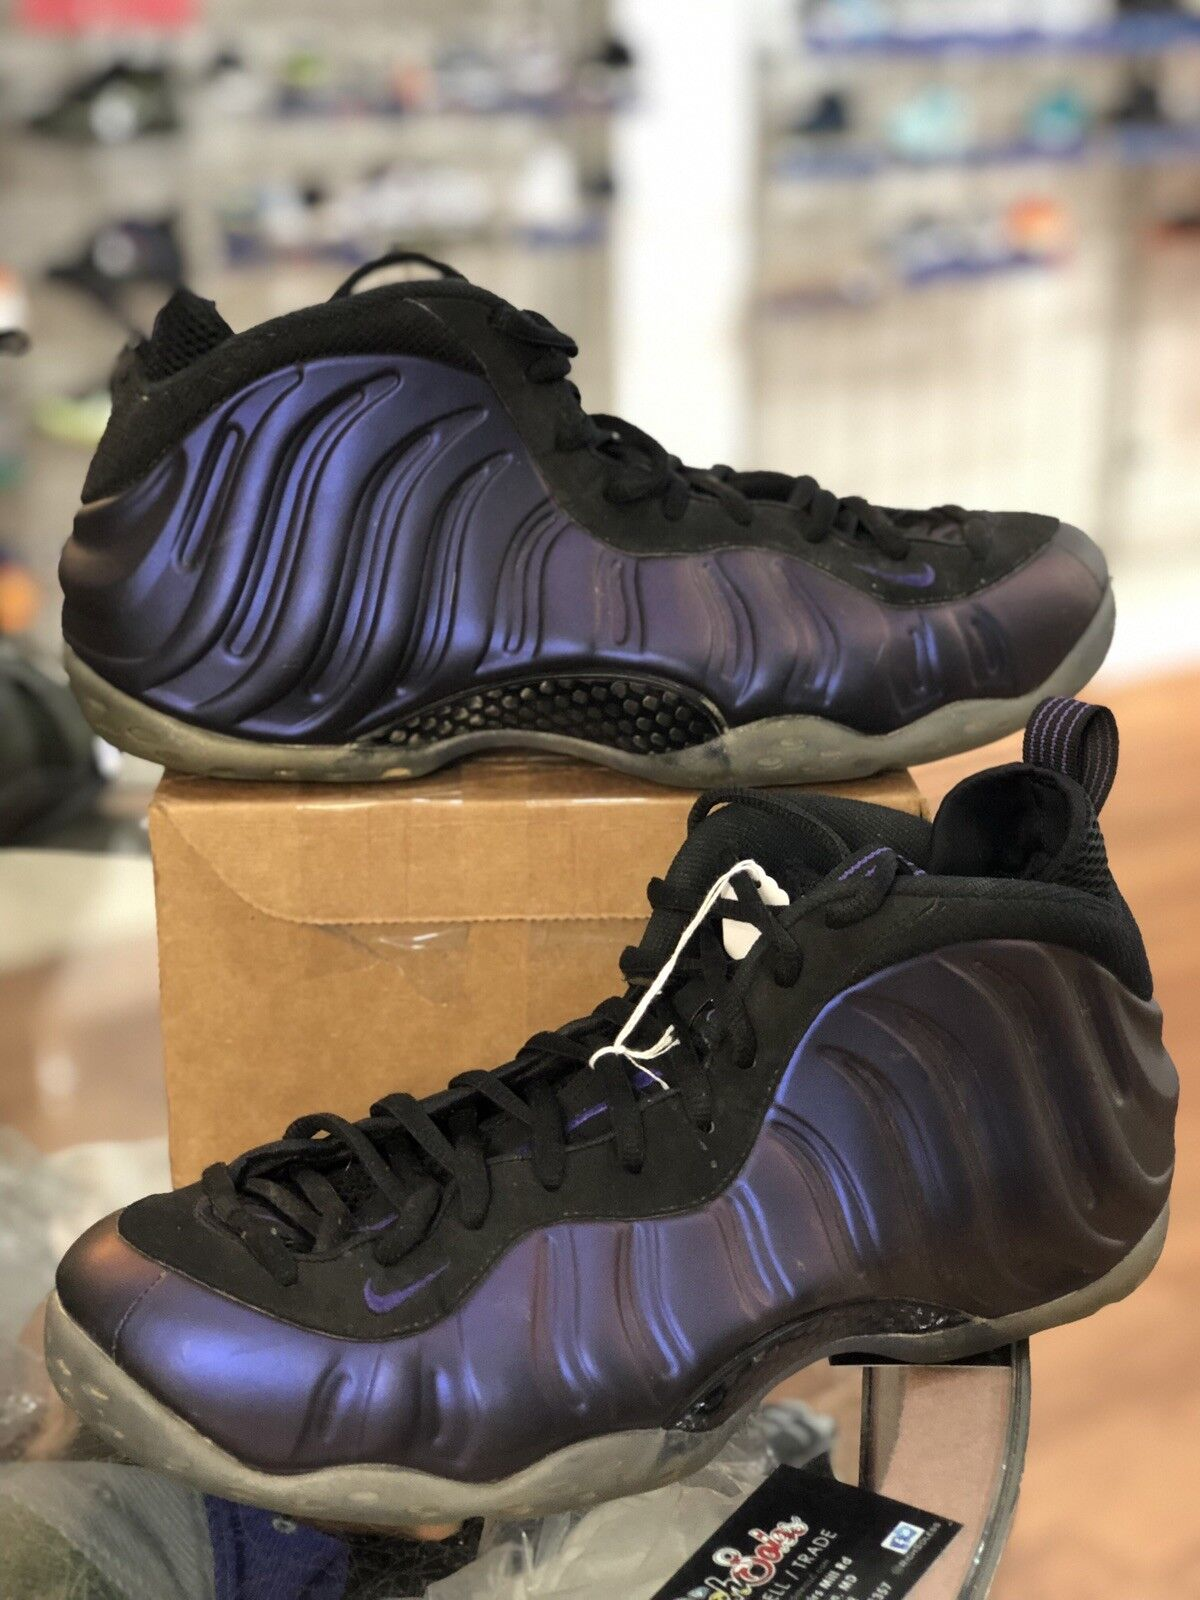 Nike Air Foamposite One Eggplant Black Varsity Purple 314996-008 SZ-13 P2 N4930